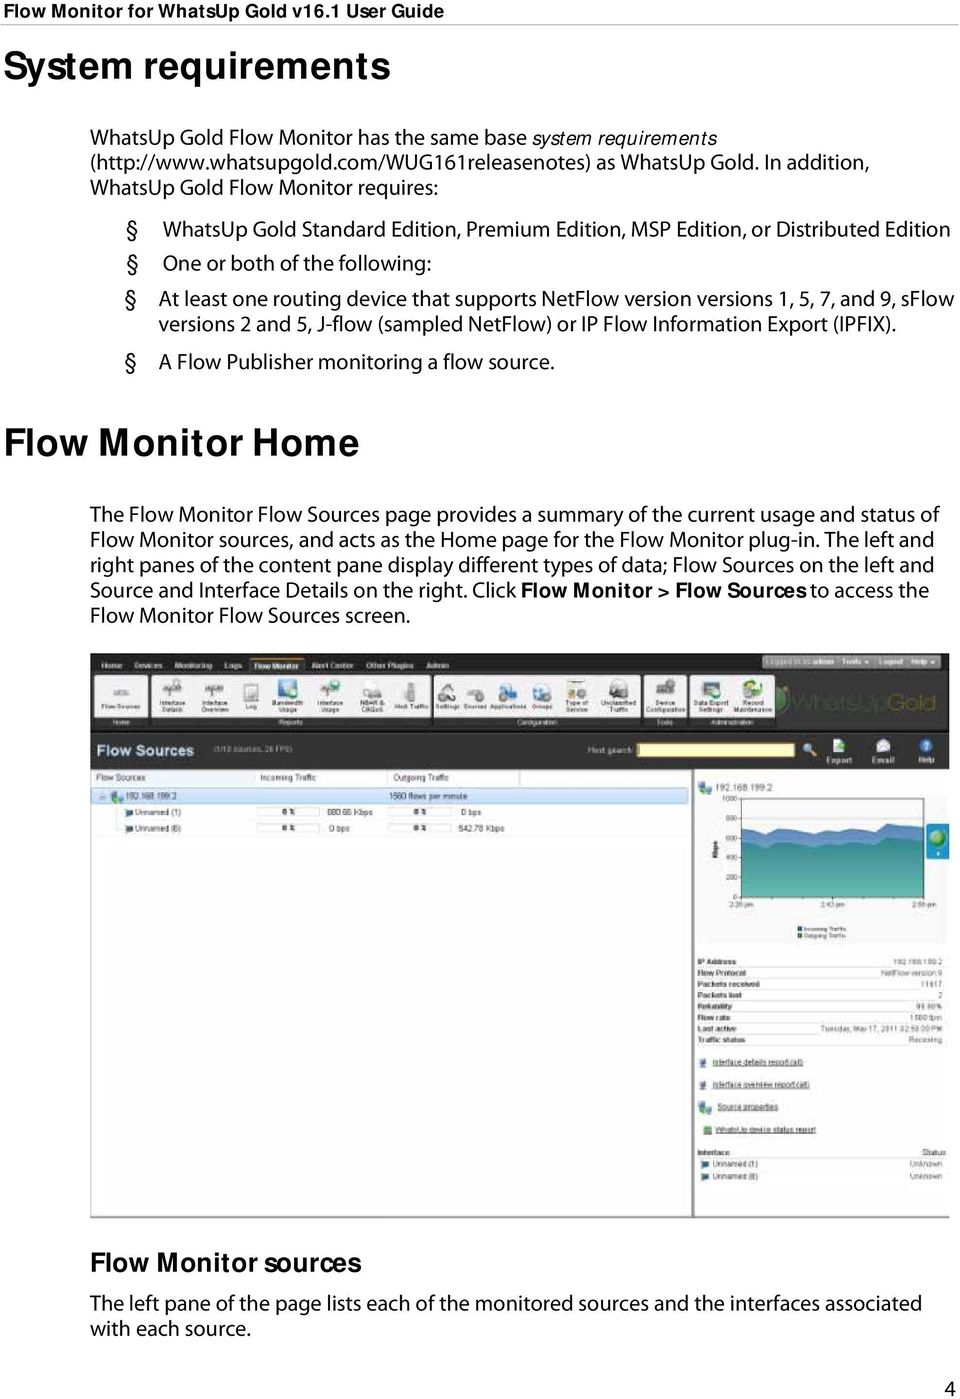 supports NetFlow version versions 1, 5, 7, and 9, sflow versions 2 and 5, J-flow (sampled NetFlow) or IP Flow Information Export (IPFIX). A Flow Publisher monitoring a flow source.